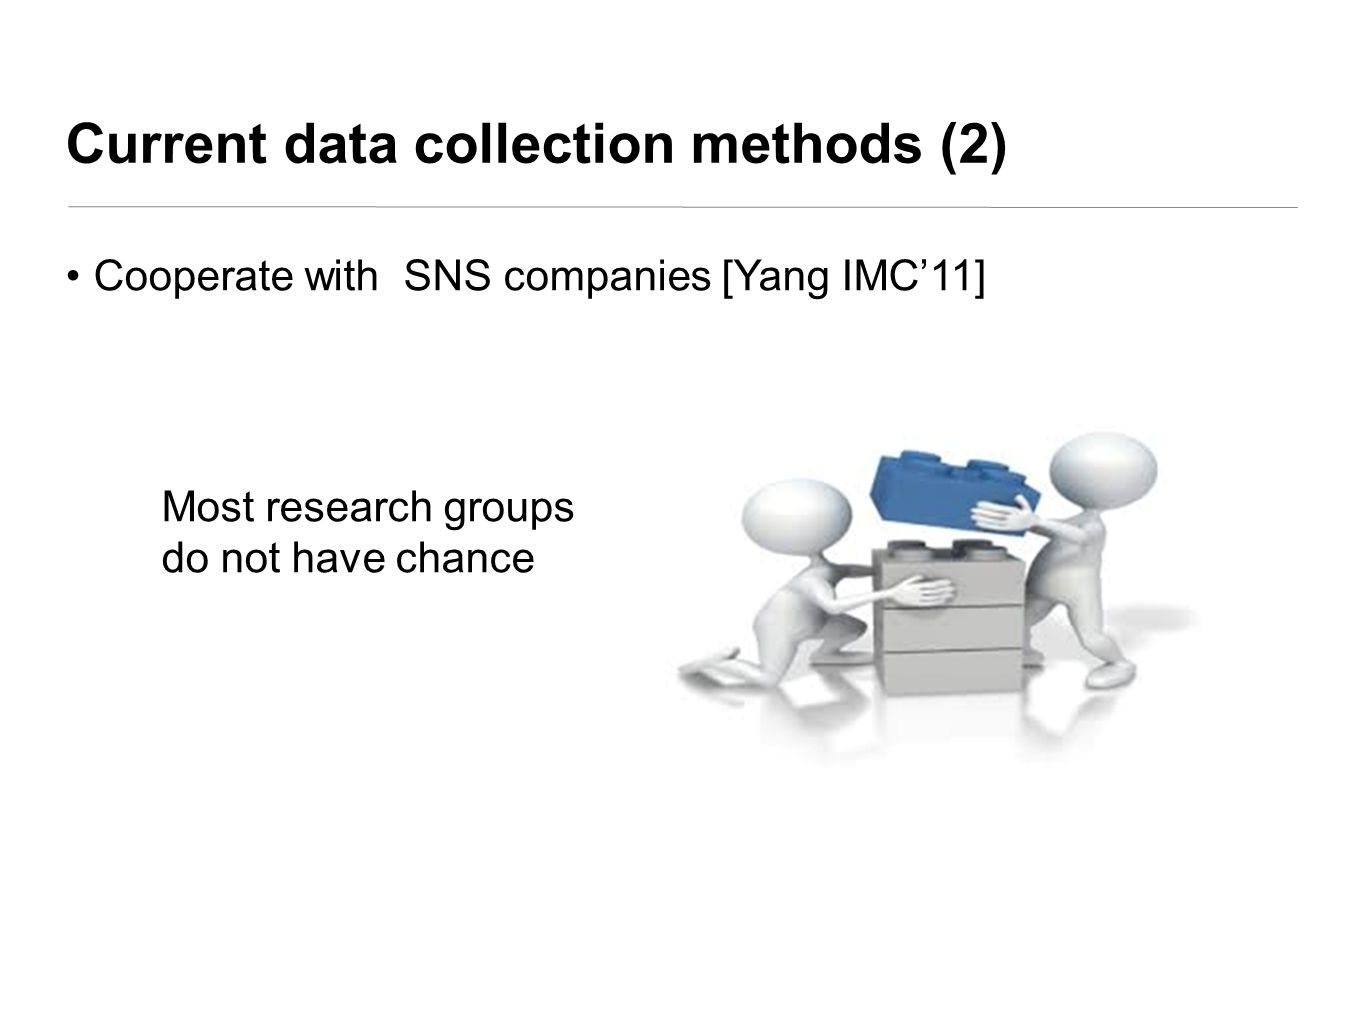 Current data collection methods (2)